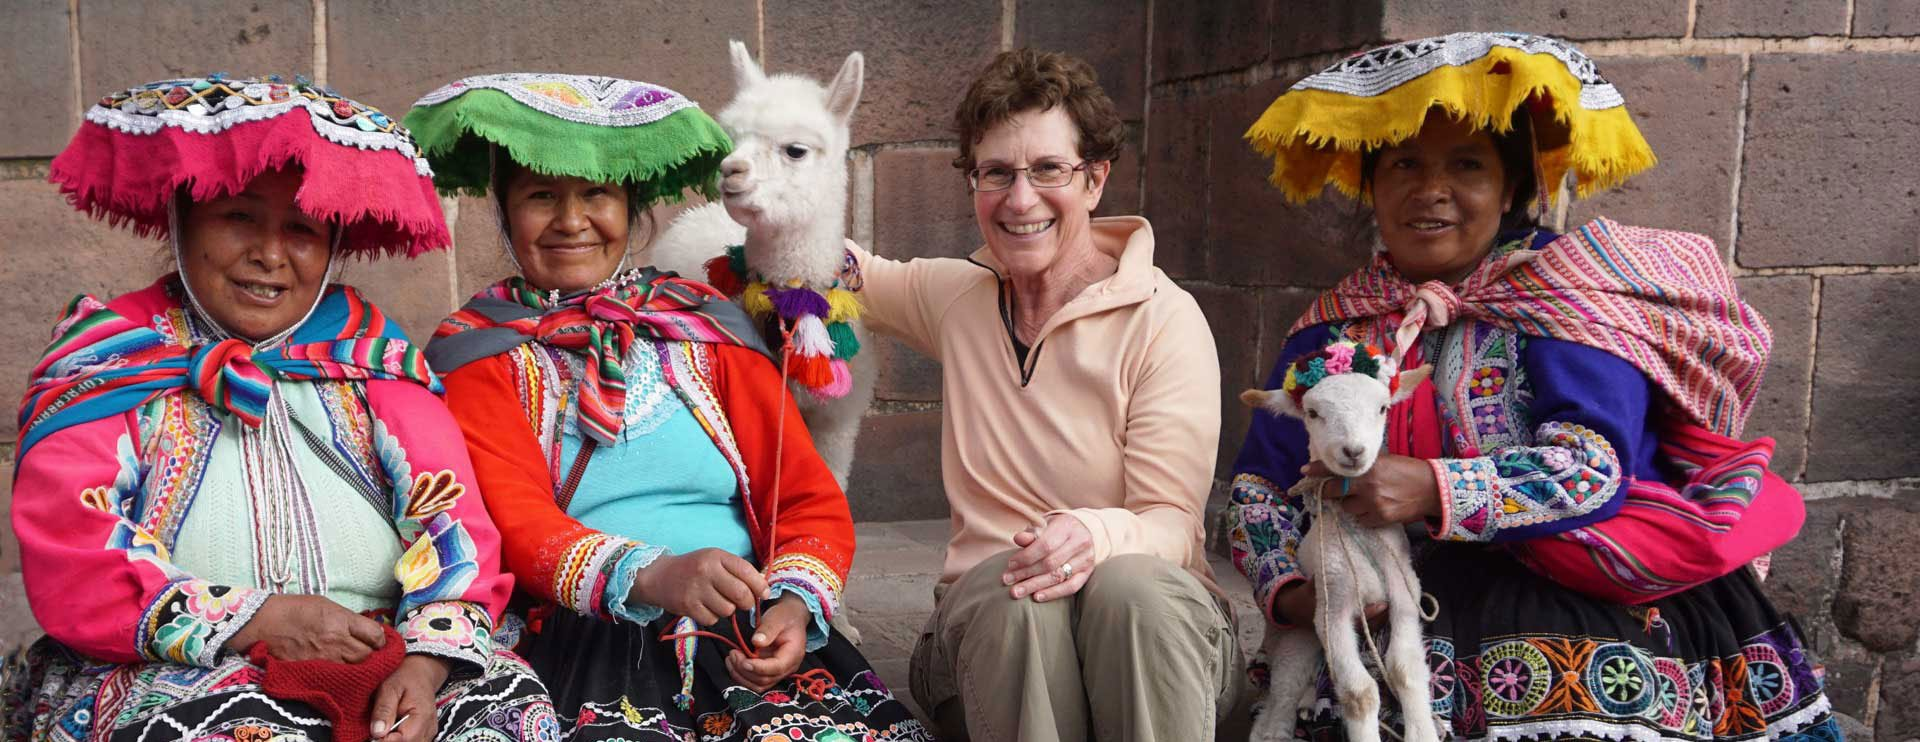 Tourist with Peruvian Ladies